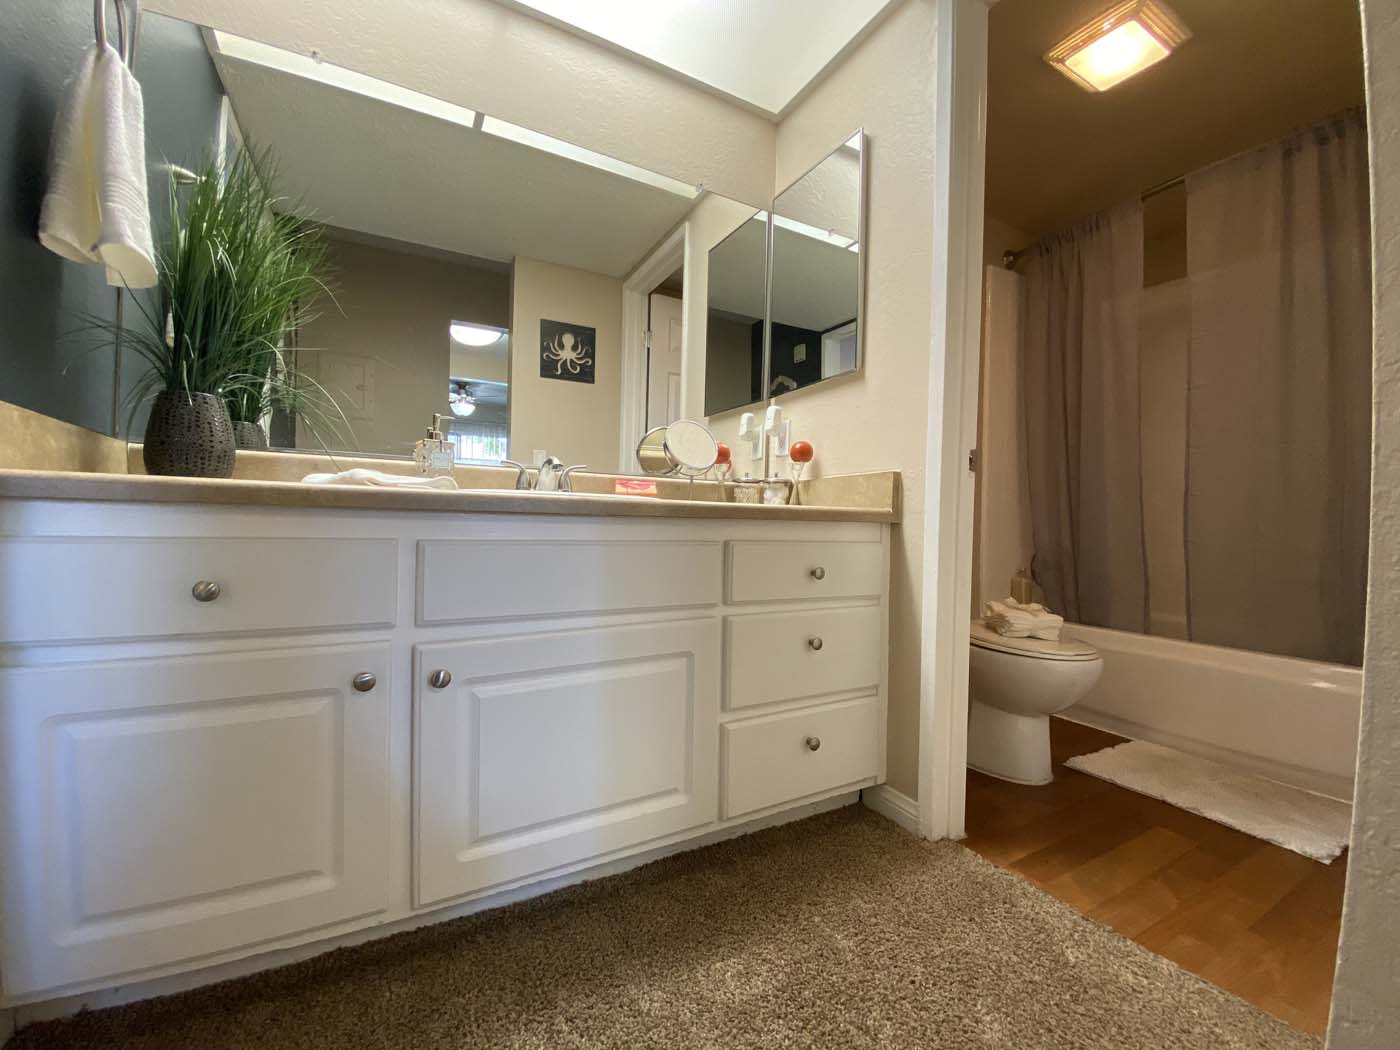 Bathroom With Storage at Stoneridge Apartment, Upland, California